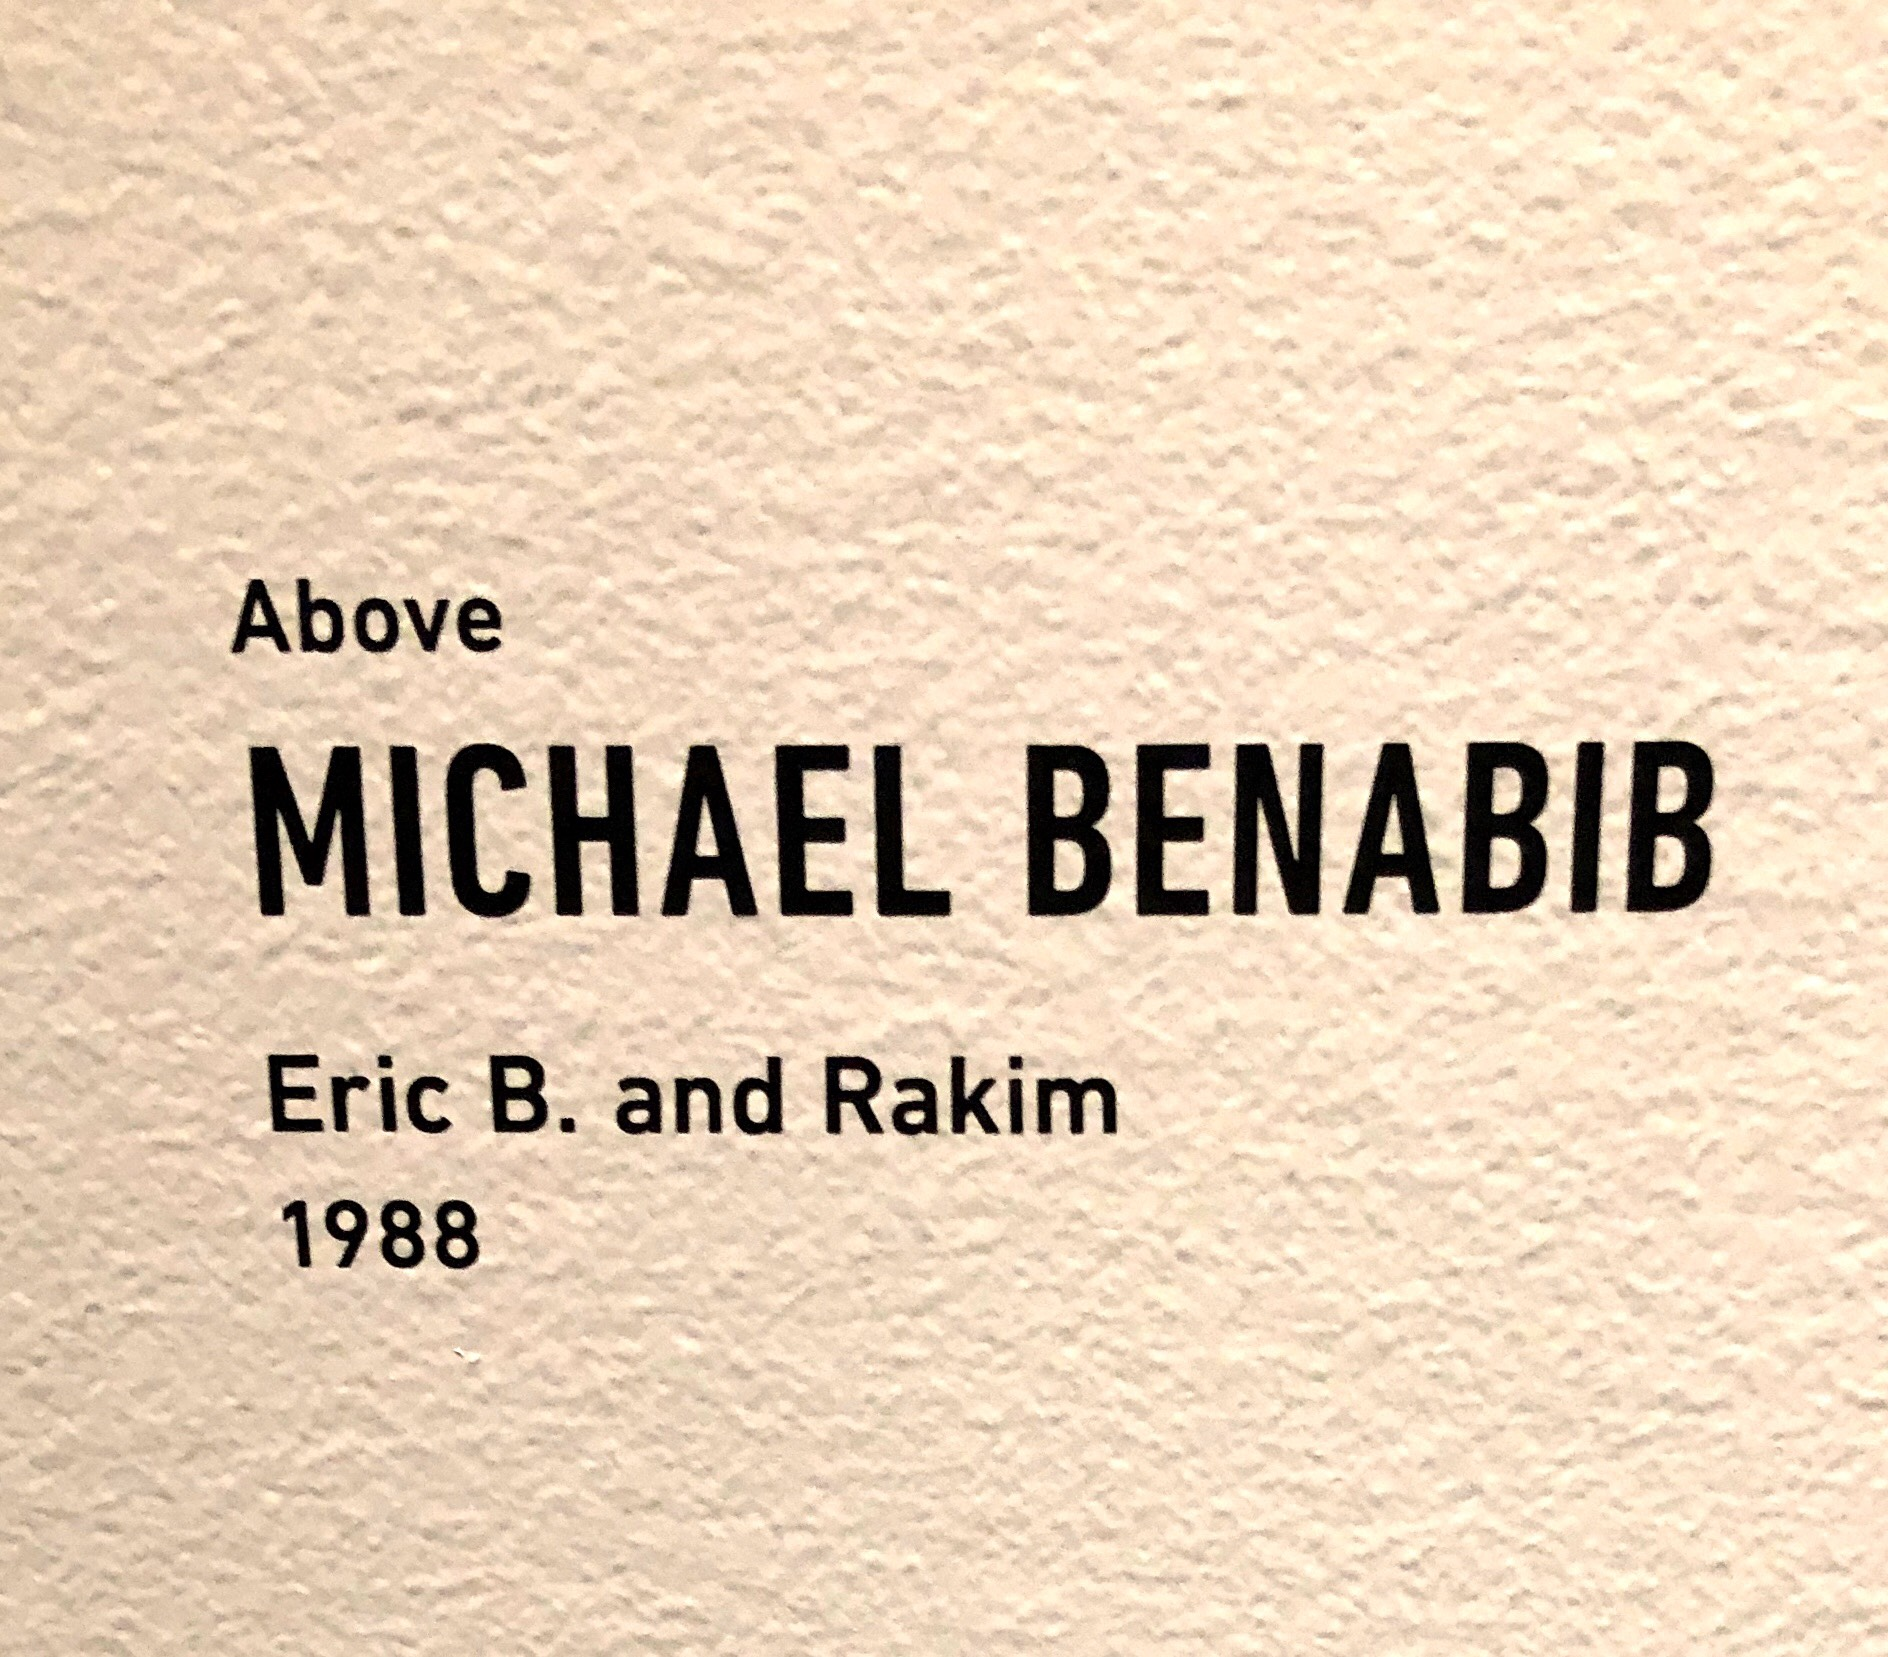 Michael Benabib title card for Eric B Rakim display